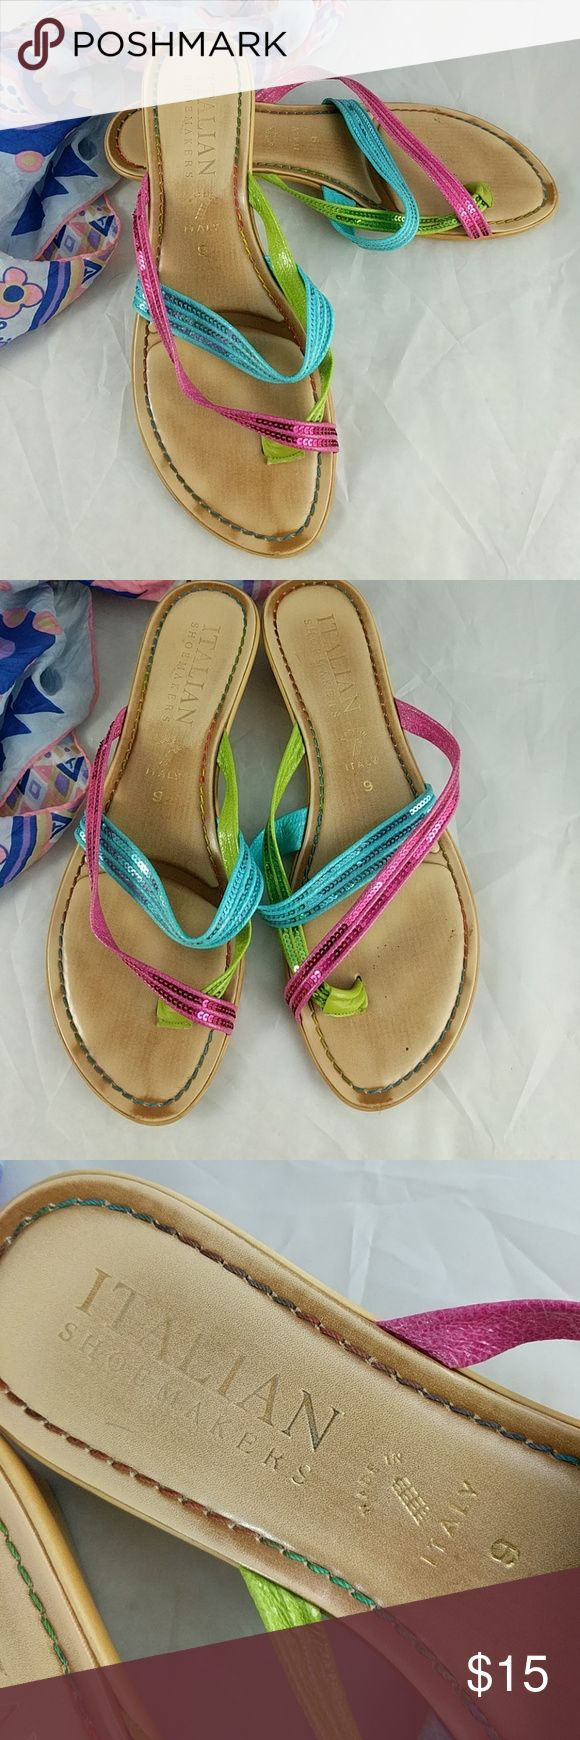 """Italian shoemakers strappy sandals 9 Berry lime, and teal sequenced straps.  1.5"""" heel.  Worn in, but really well made.  Fun summer sandals. Italian Shoemakers Shoes Sandals"""